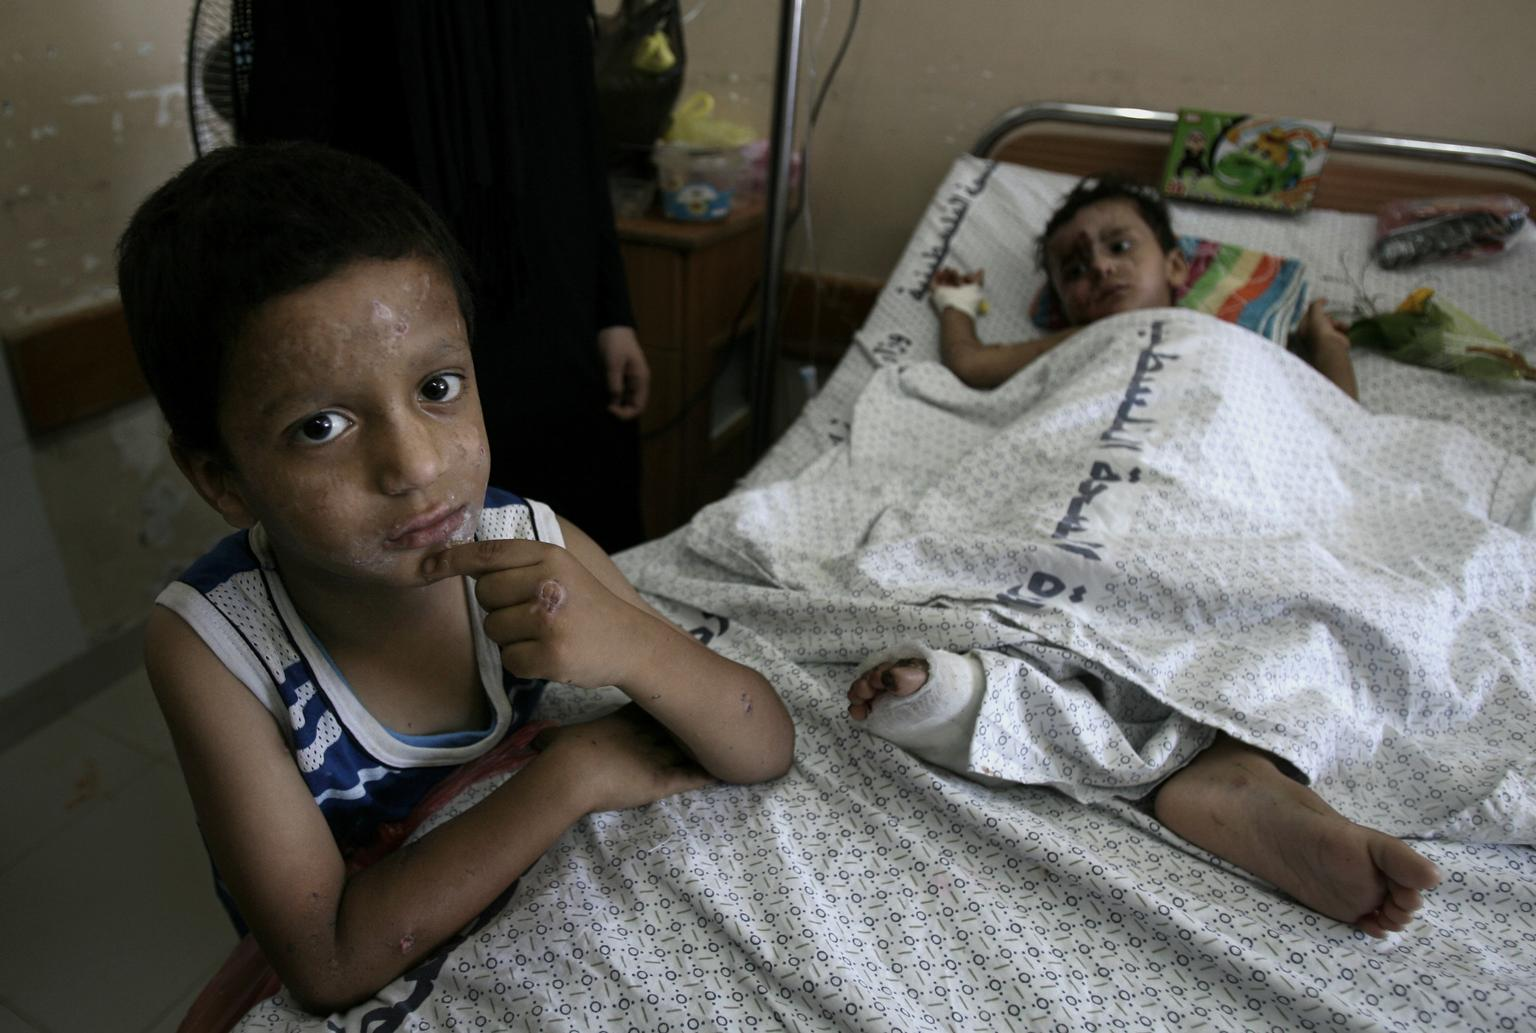 Moussab Wahdan, 5, stands beside the cot on which his 18-month-old brother, Mohammed Ali Wahdan, lies in the paediatric ward of Al-Shifa Hospital, Gaza.